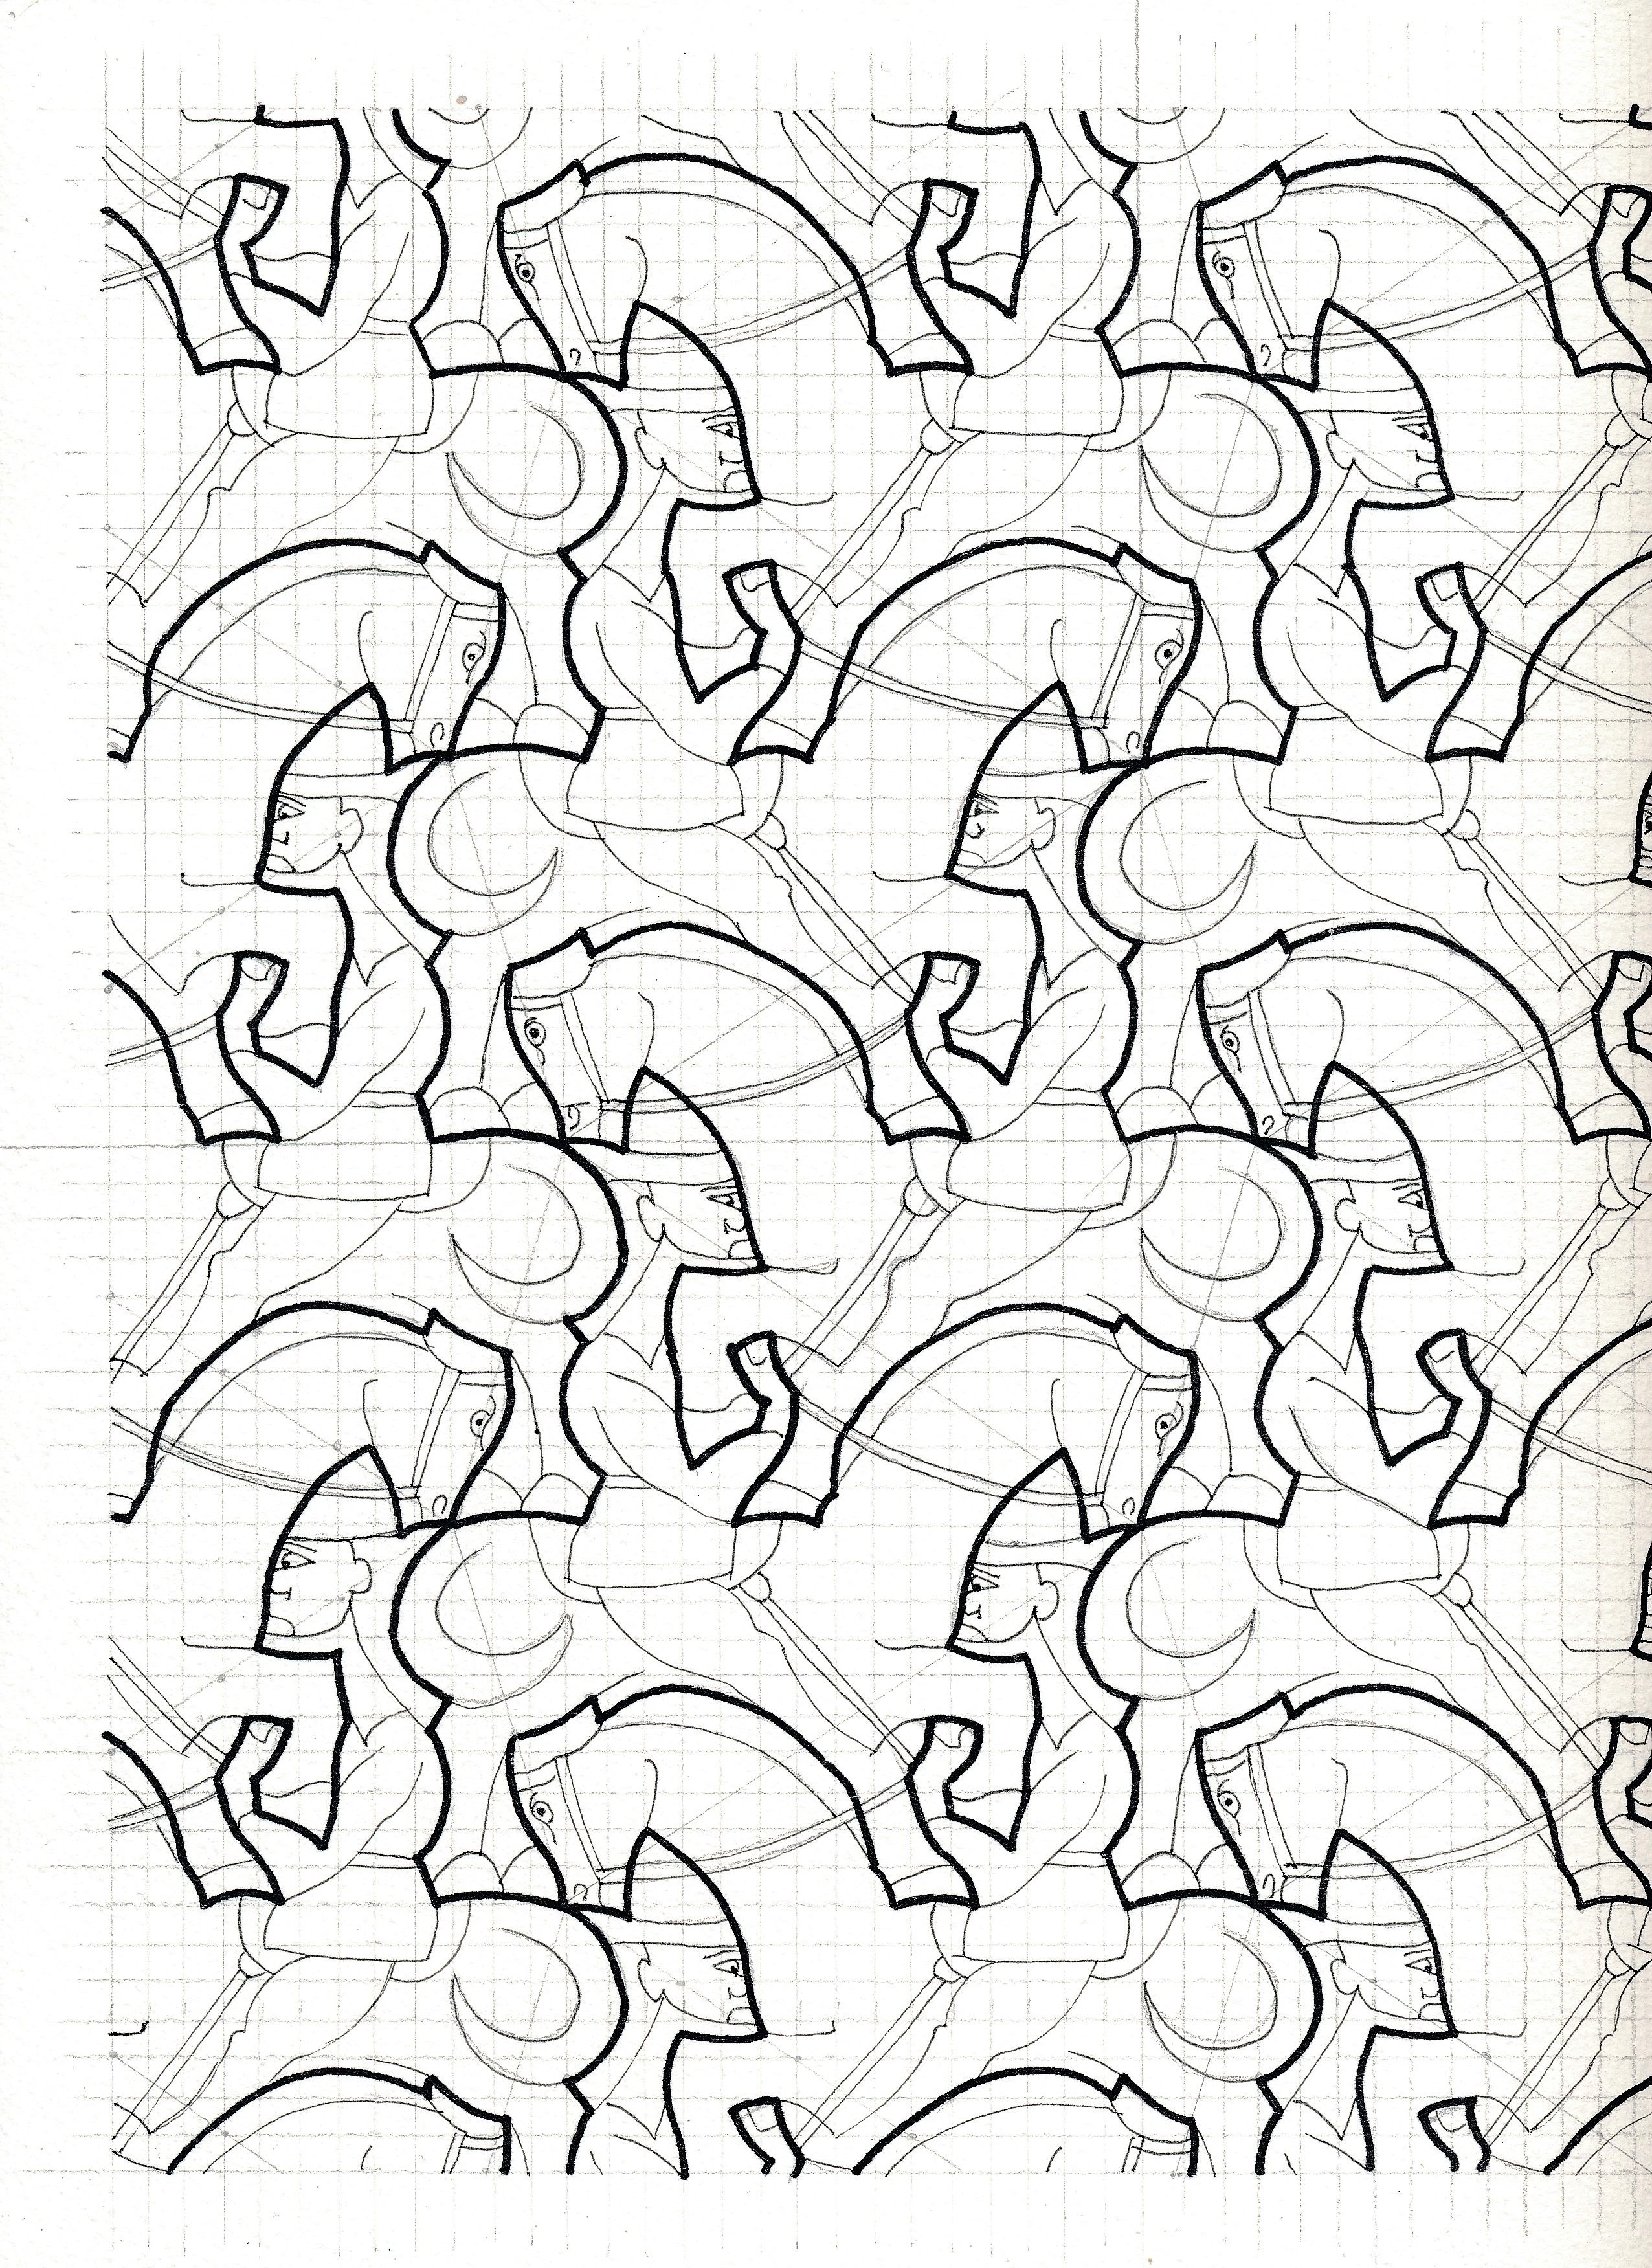 Bird Fish Tessellation by M.C. Escher coloring page from ...